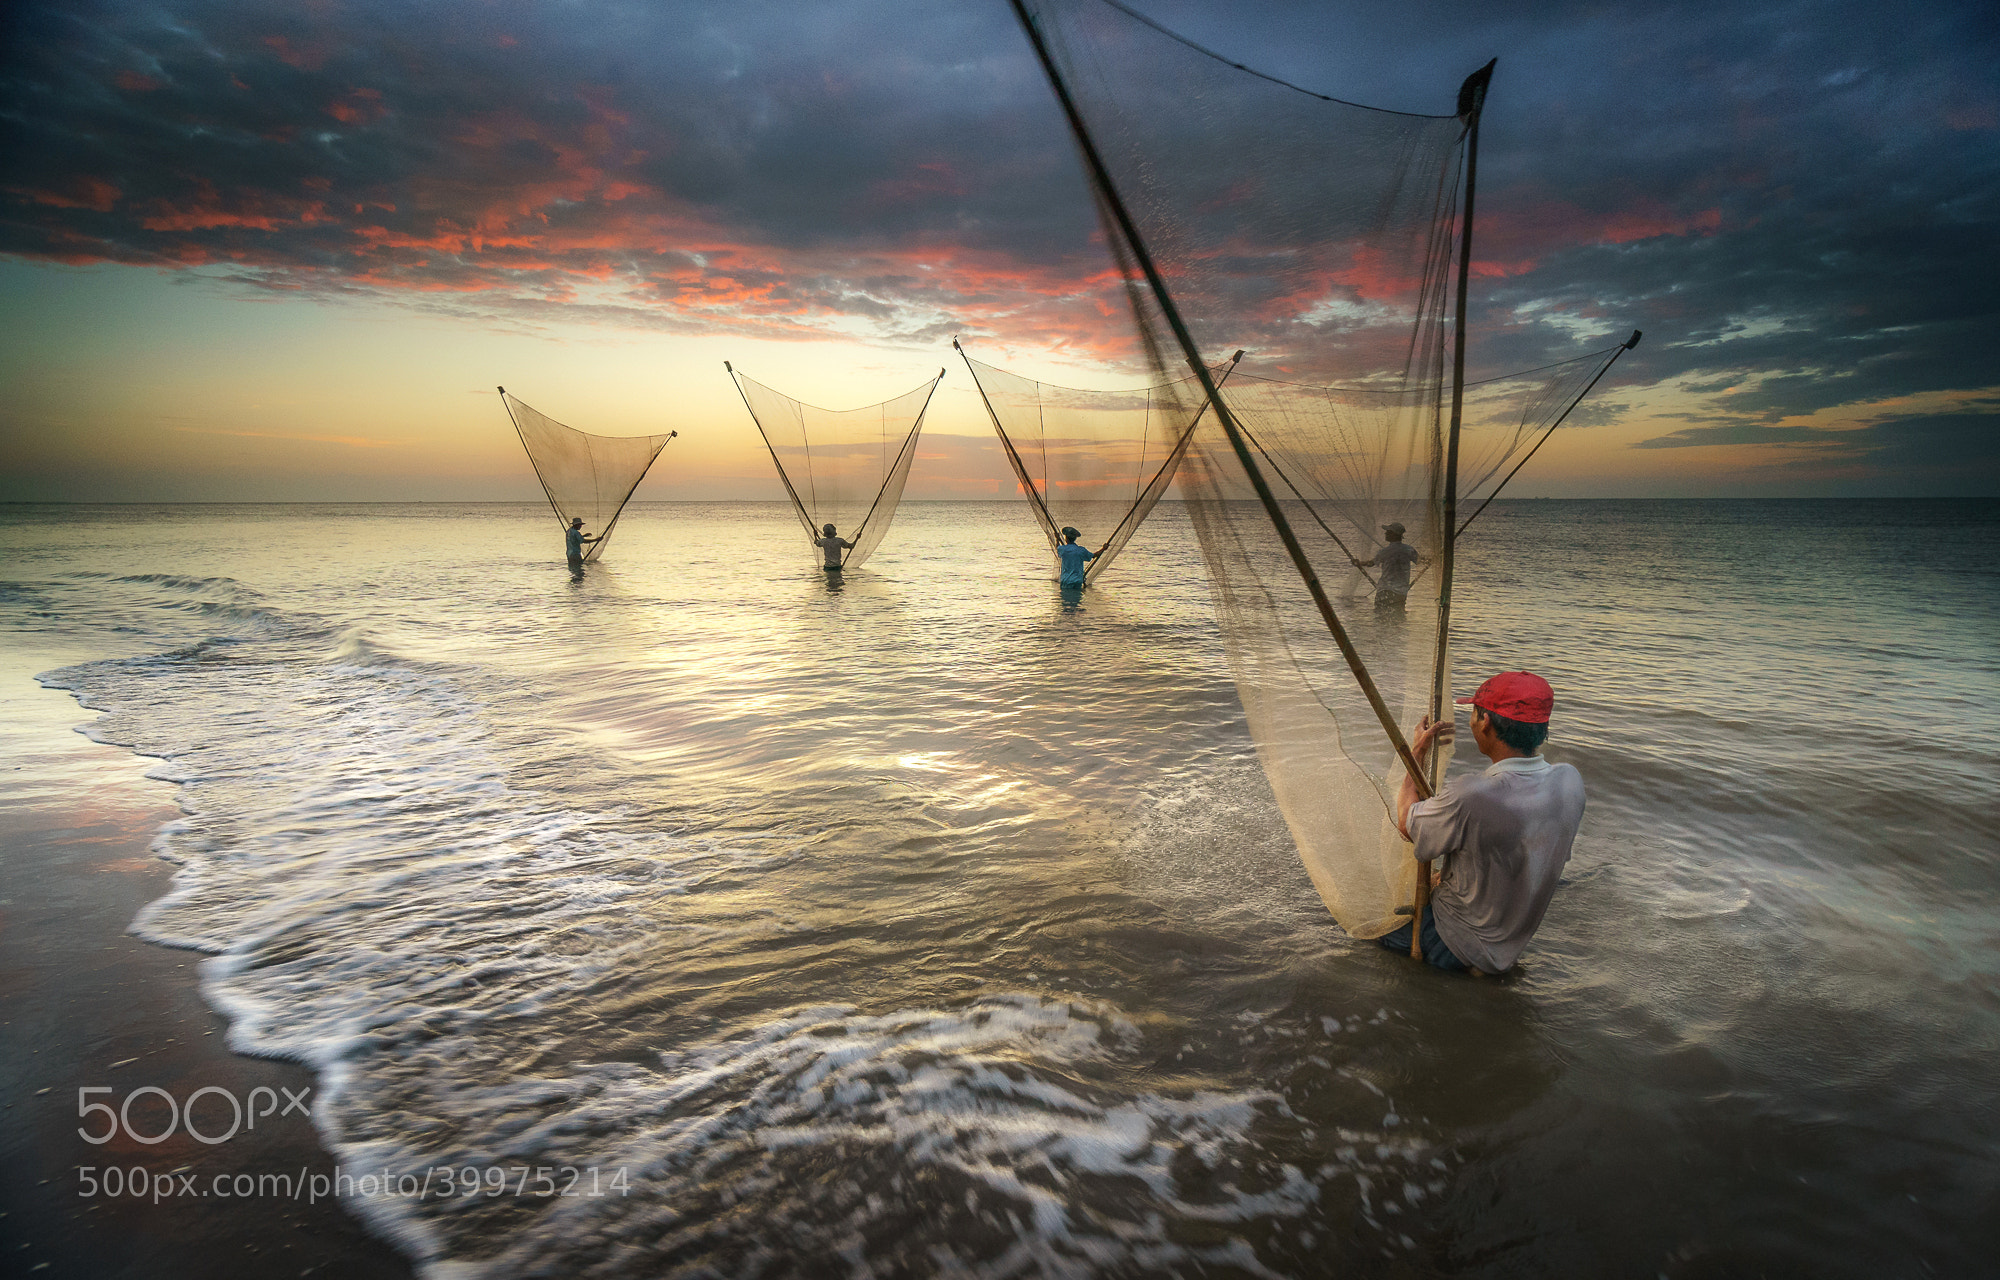 Photograph Morning work by Pham Ty on 500px